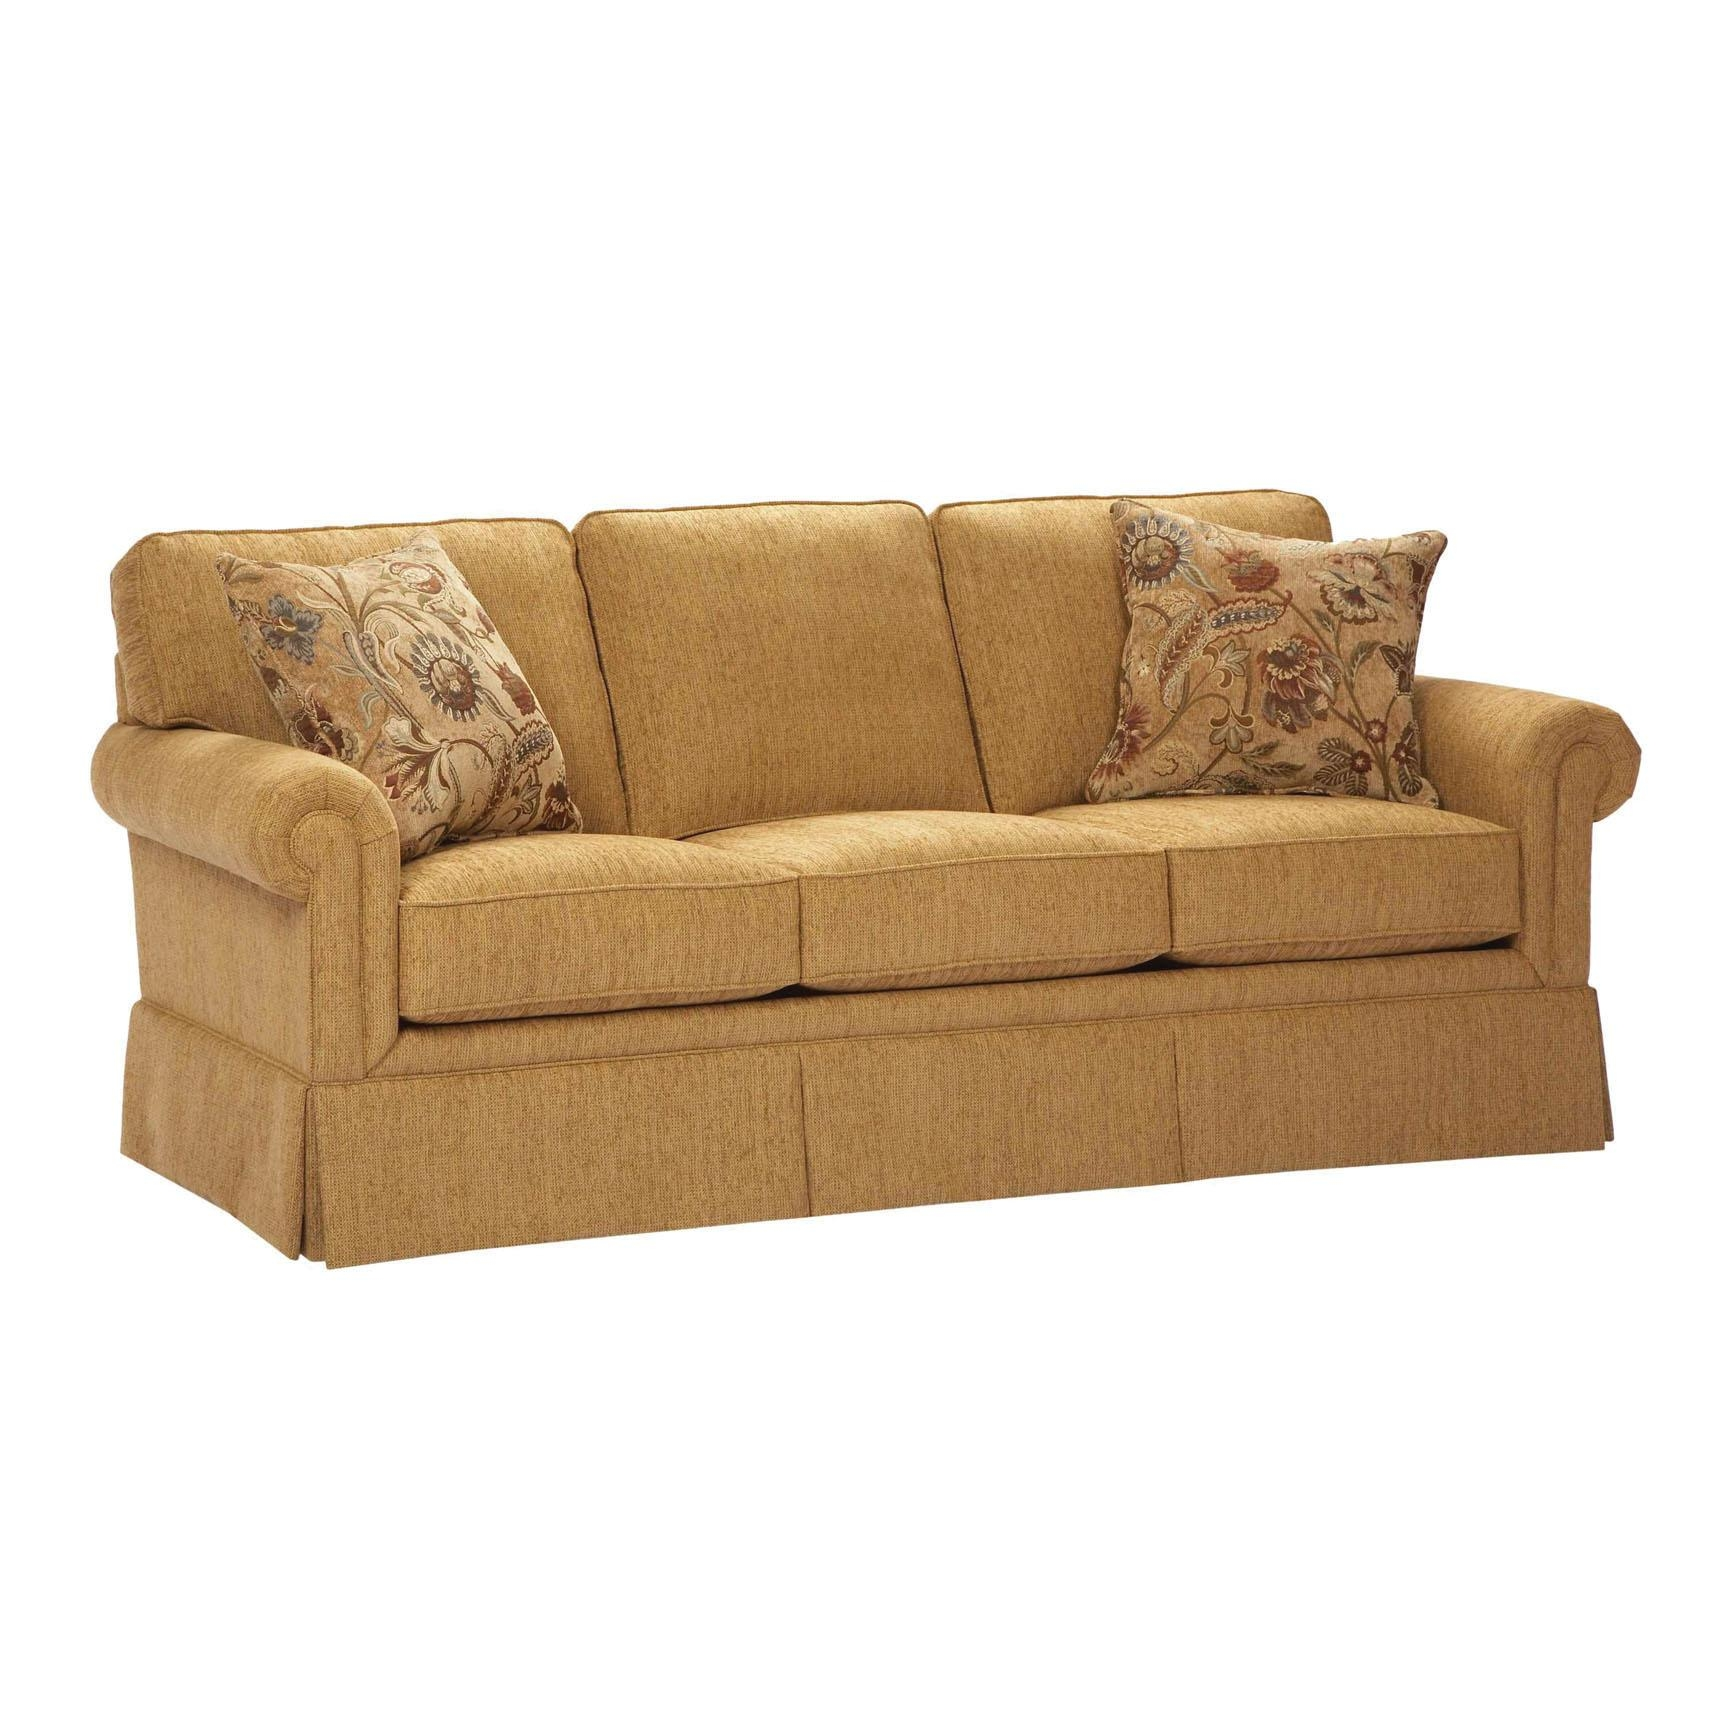 Broyhill Tanners Choice Zachary Leather Sofa Bh L7902 3 With Broyhill Perspectives Sofas (Image 12 of 20)